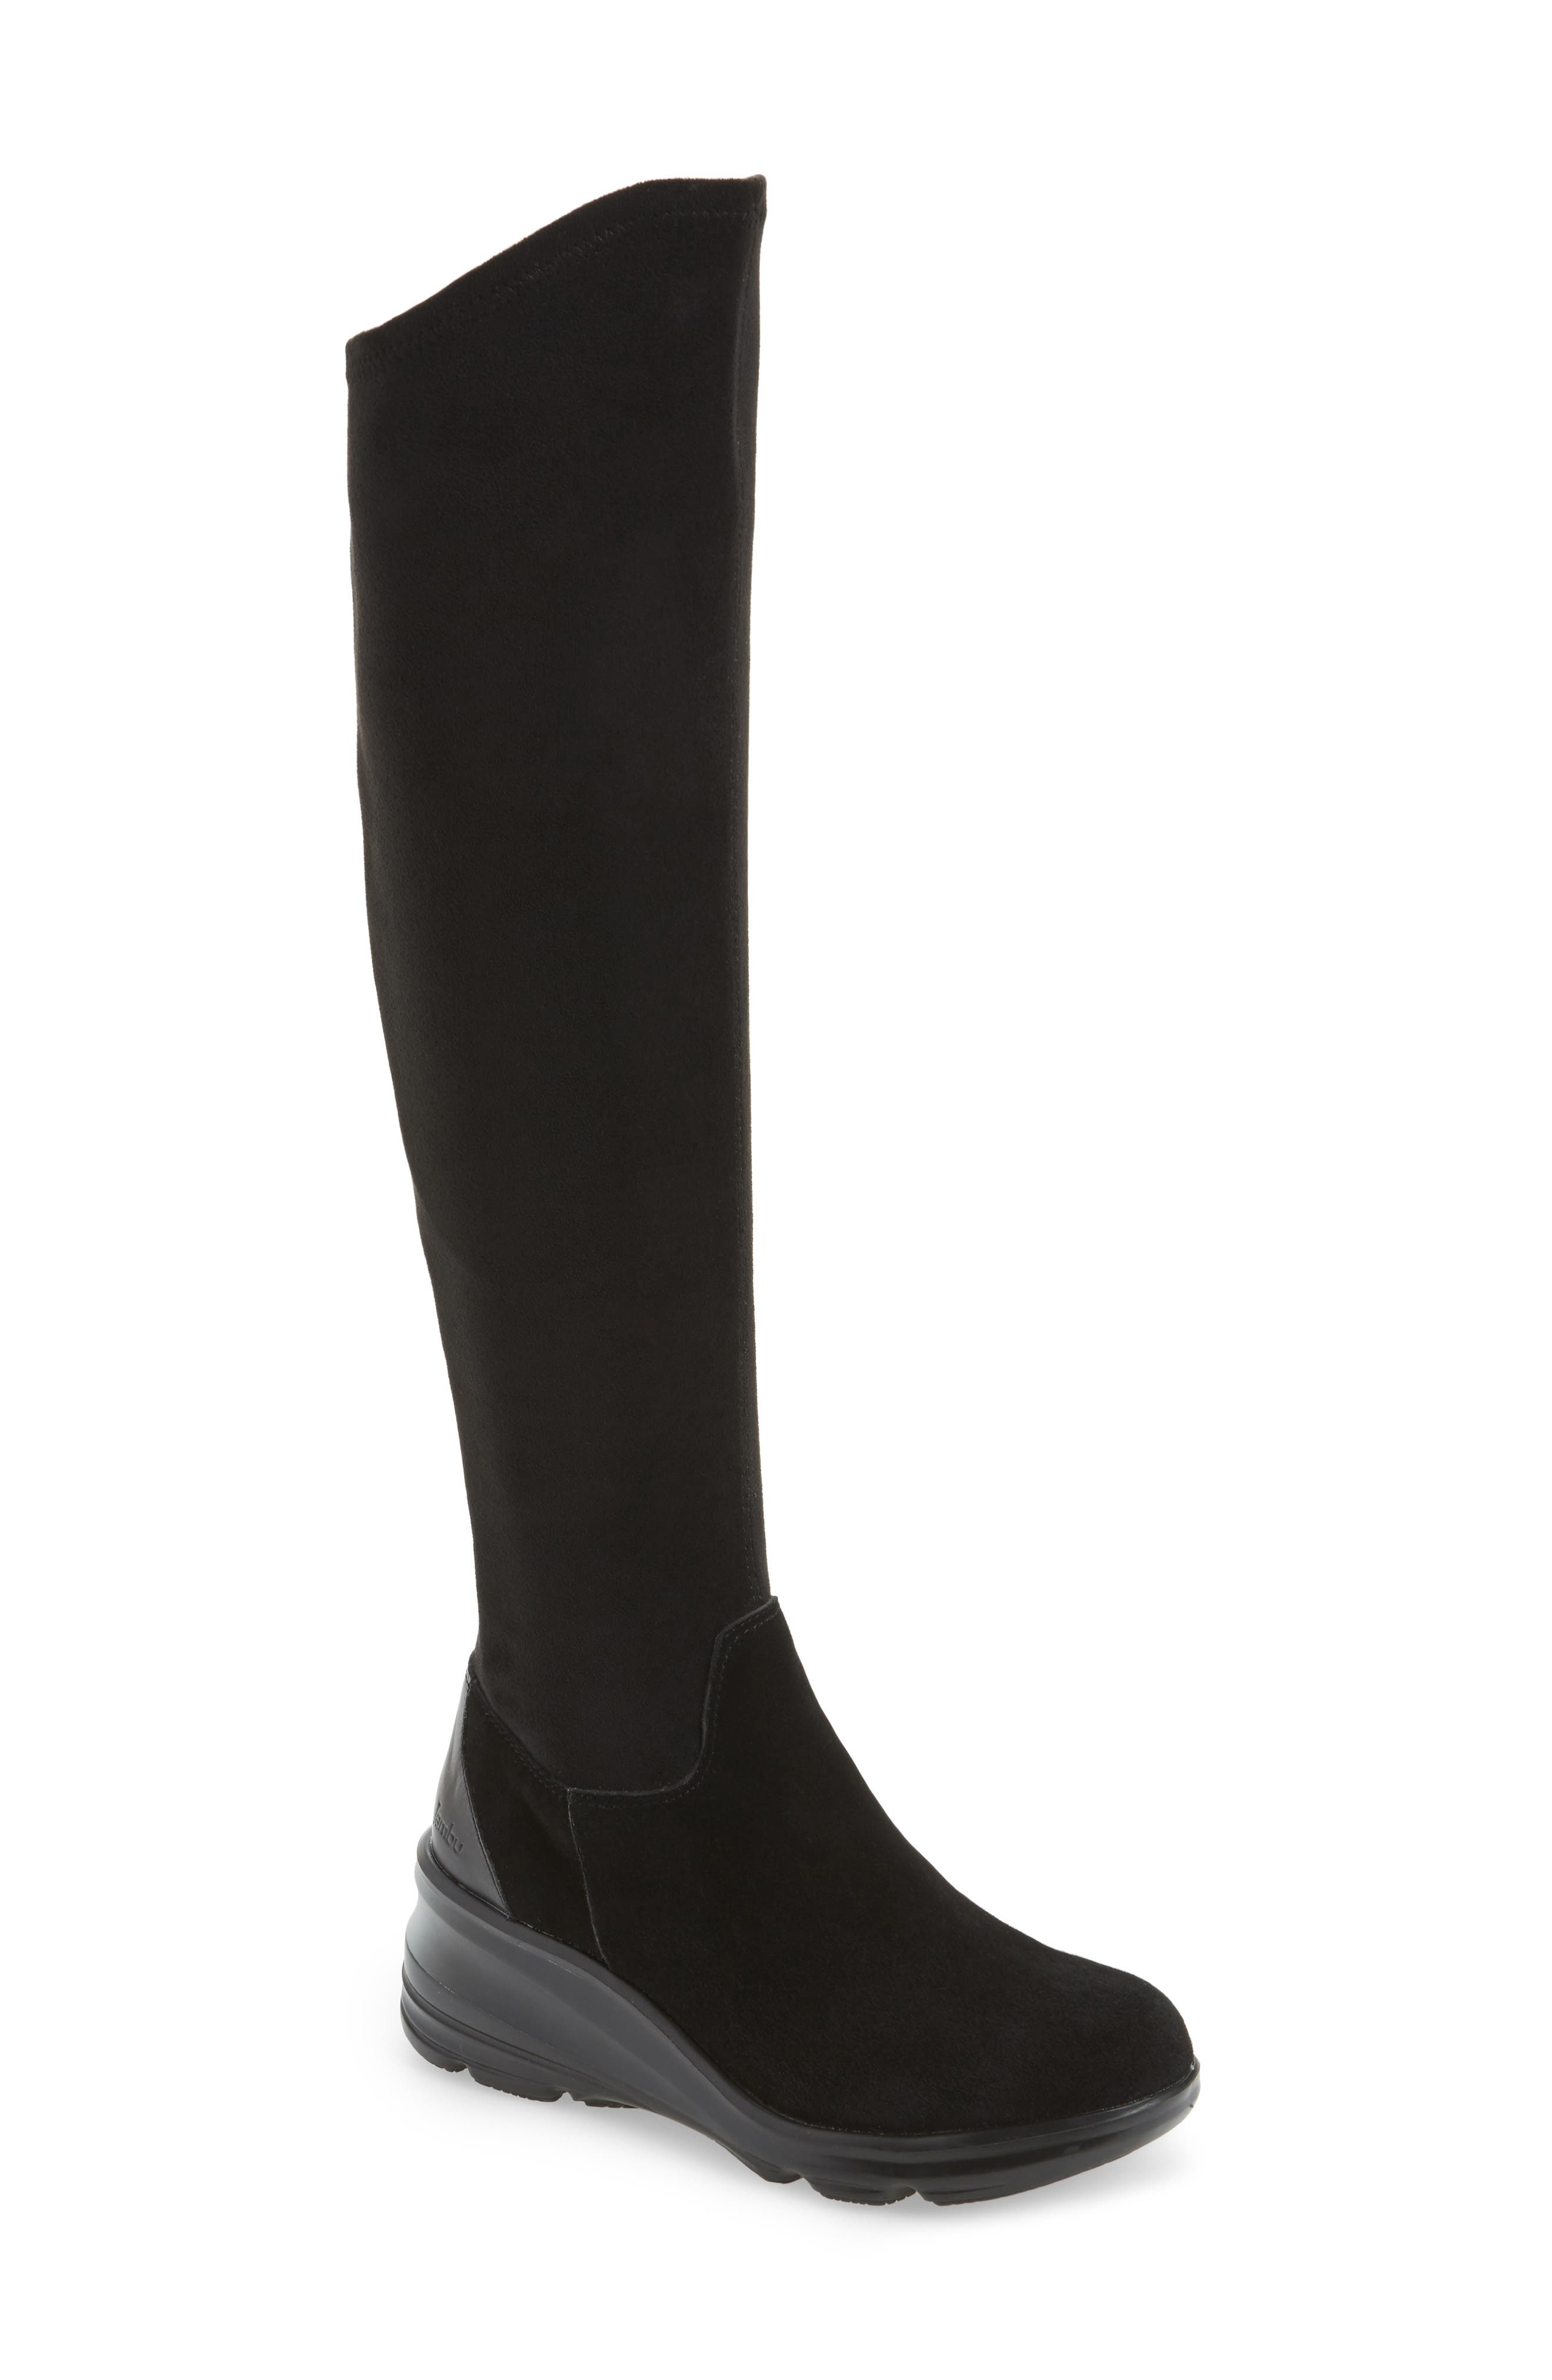 Kendra Over the Knee Water-Resistant Boot,                             Main thumbnail 1, color,                             001